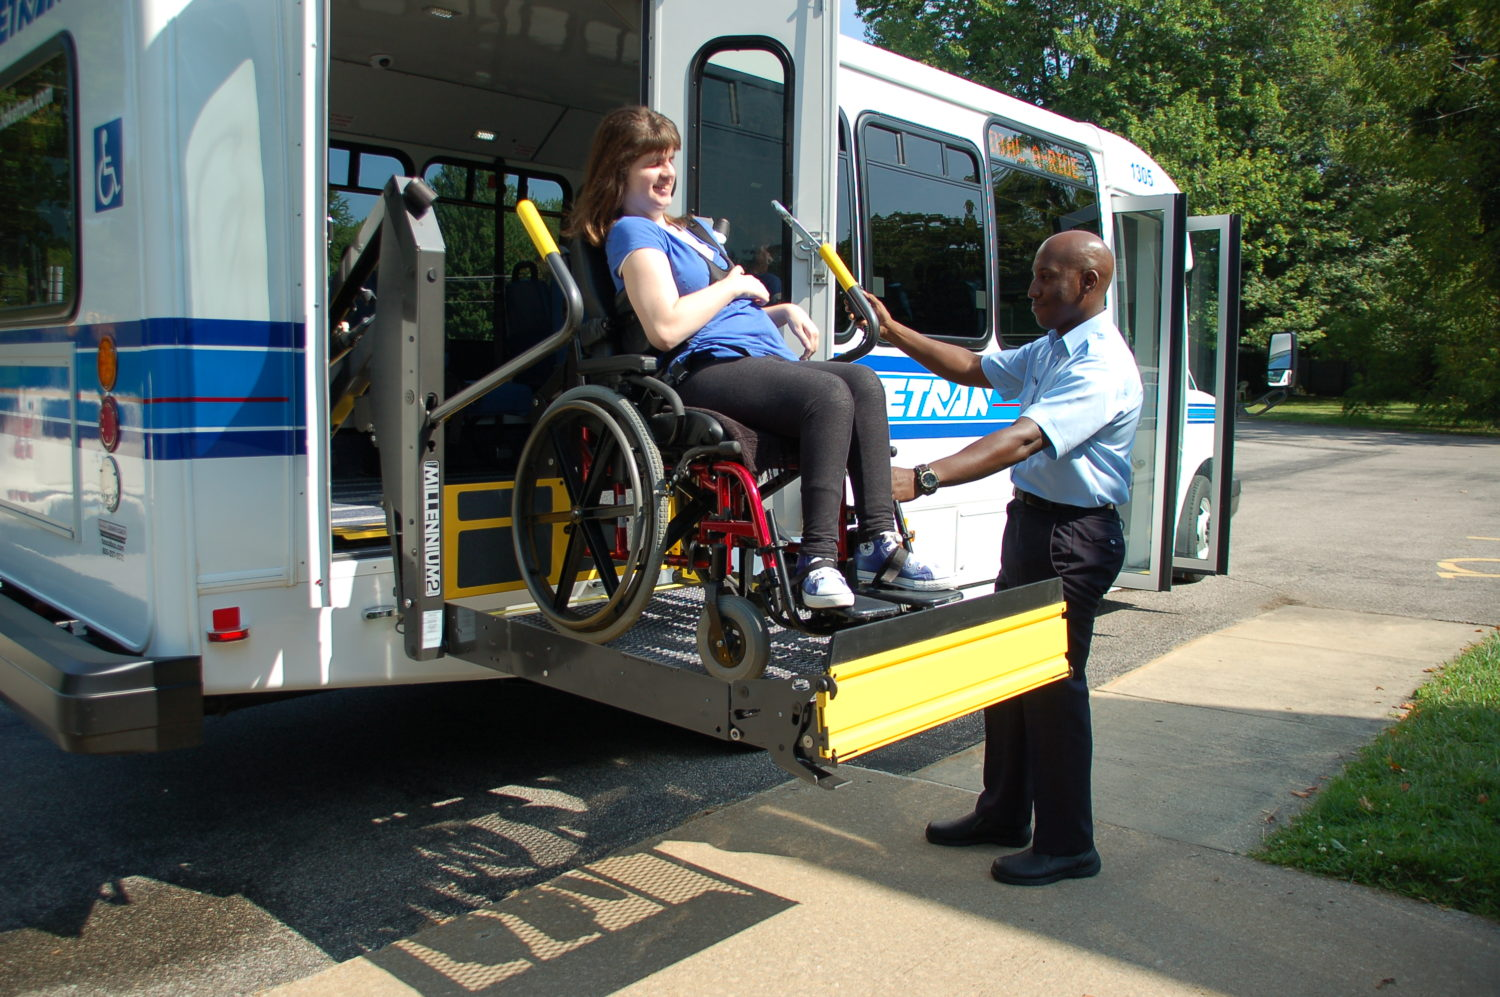 wc-rider-on-lift-with-driver-helping